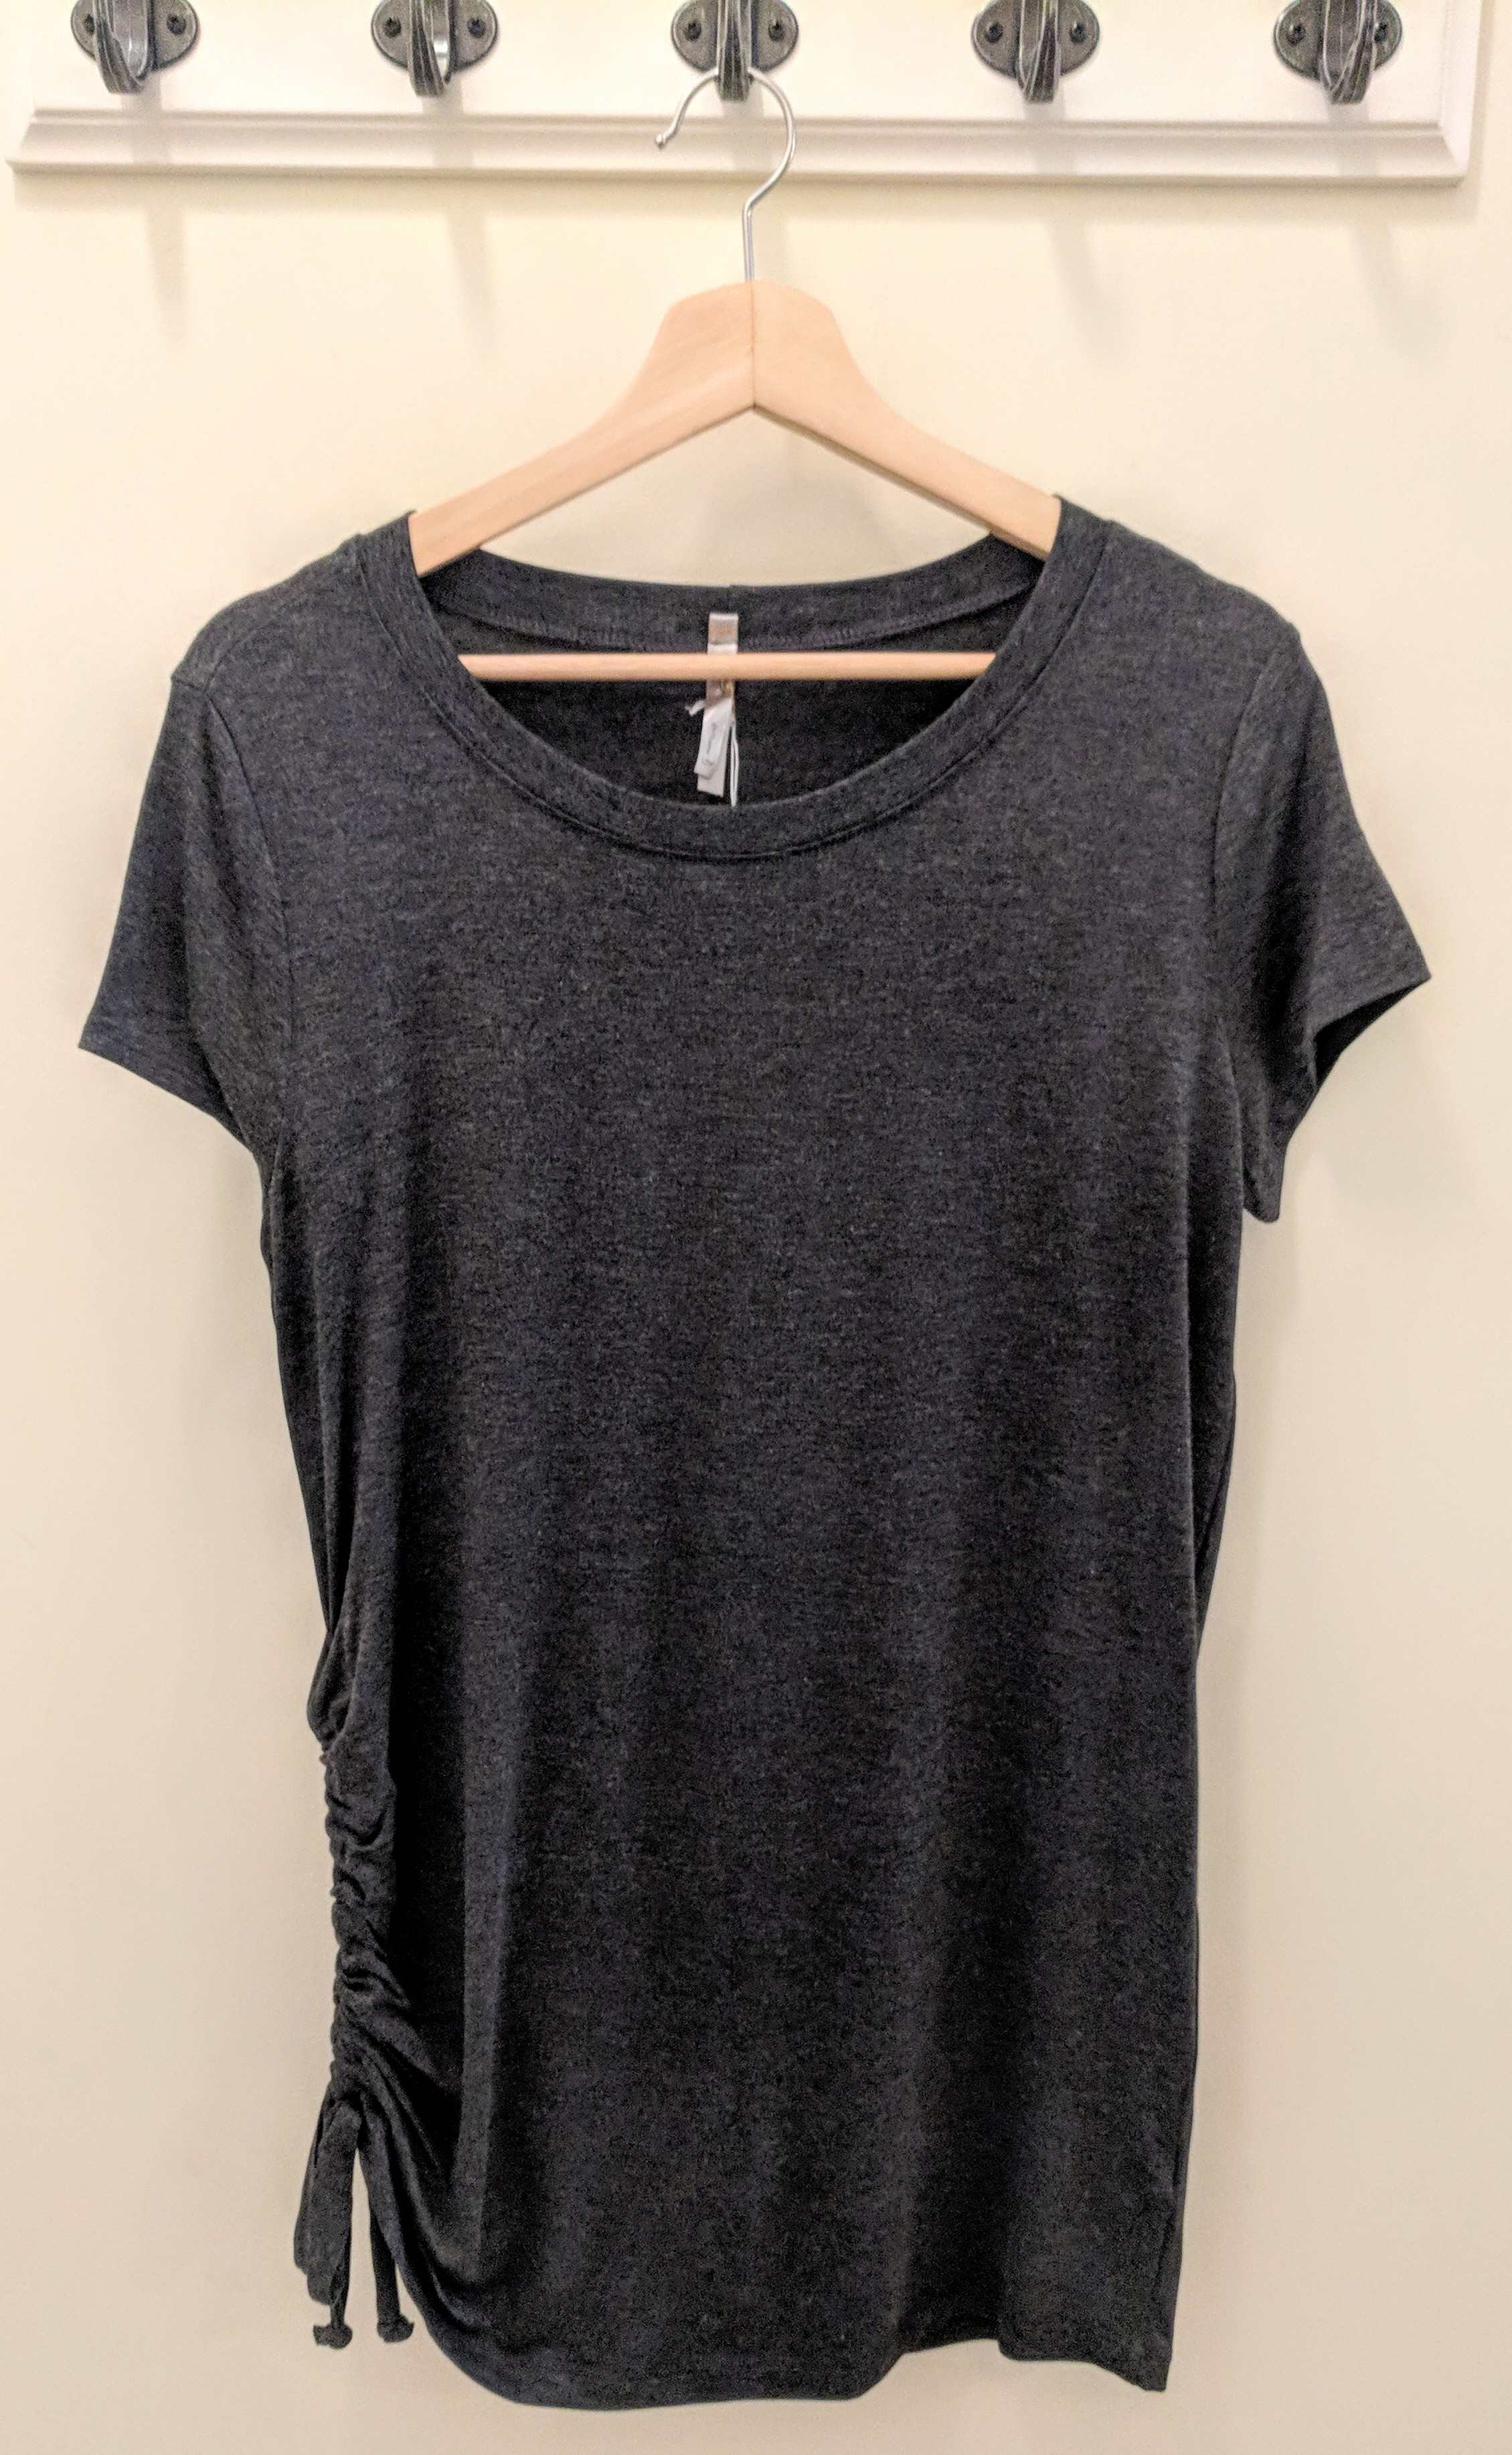 Charcoal knit tunic with adjustable drawstring on side. $28